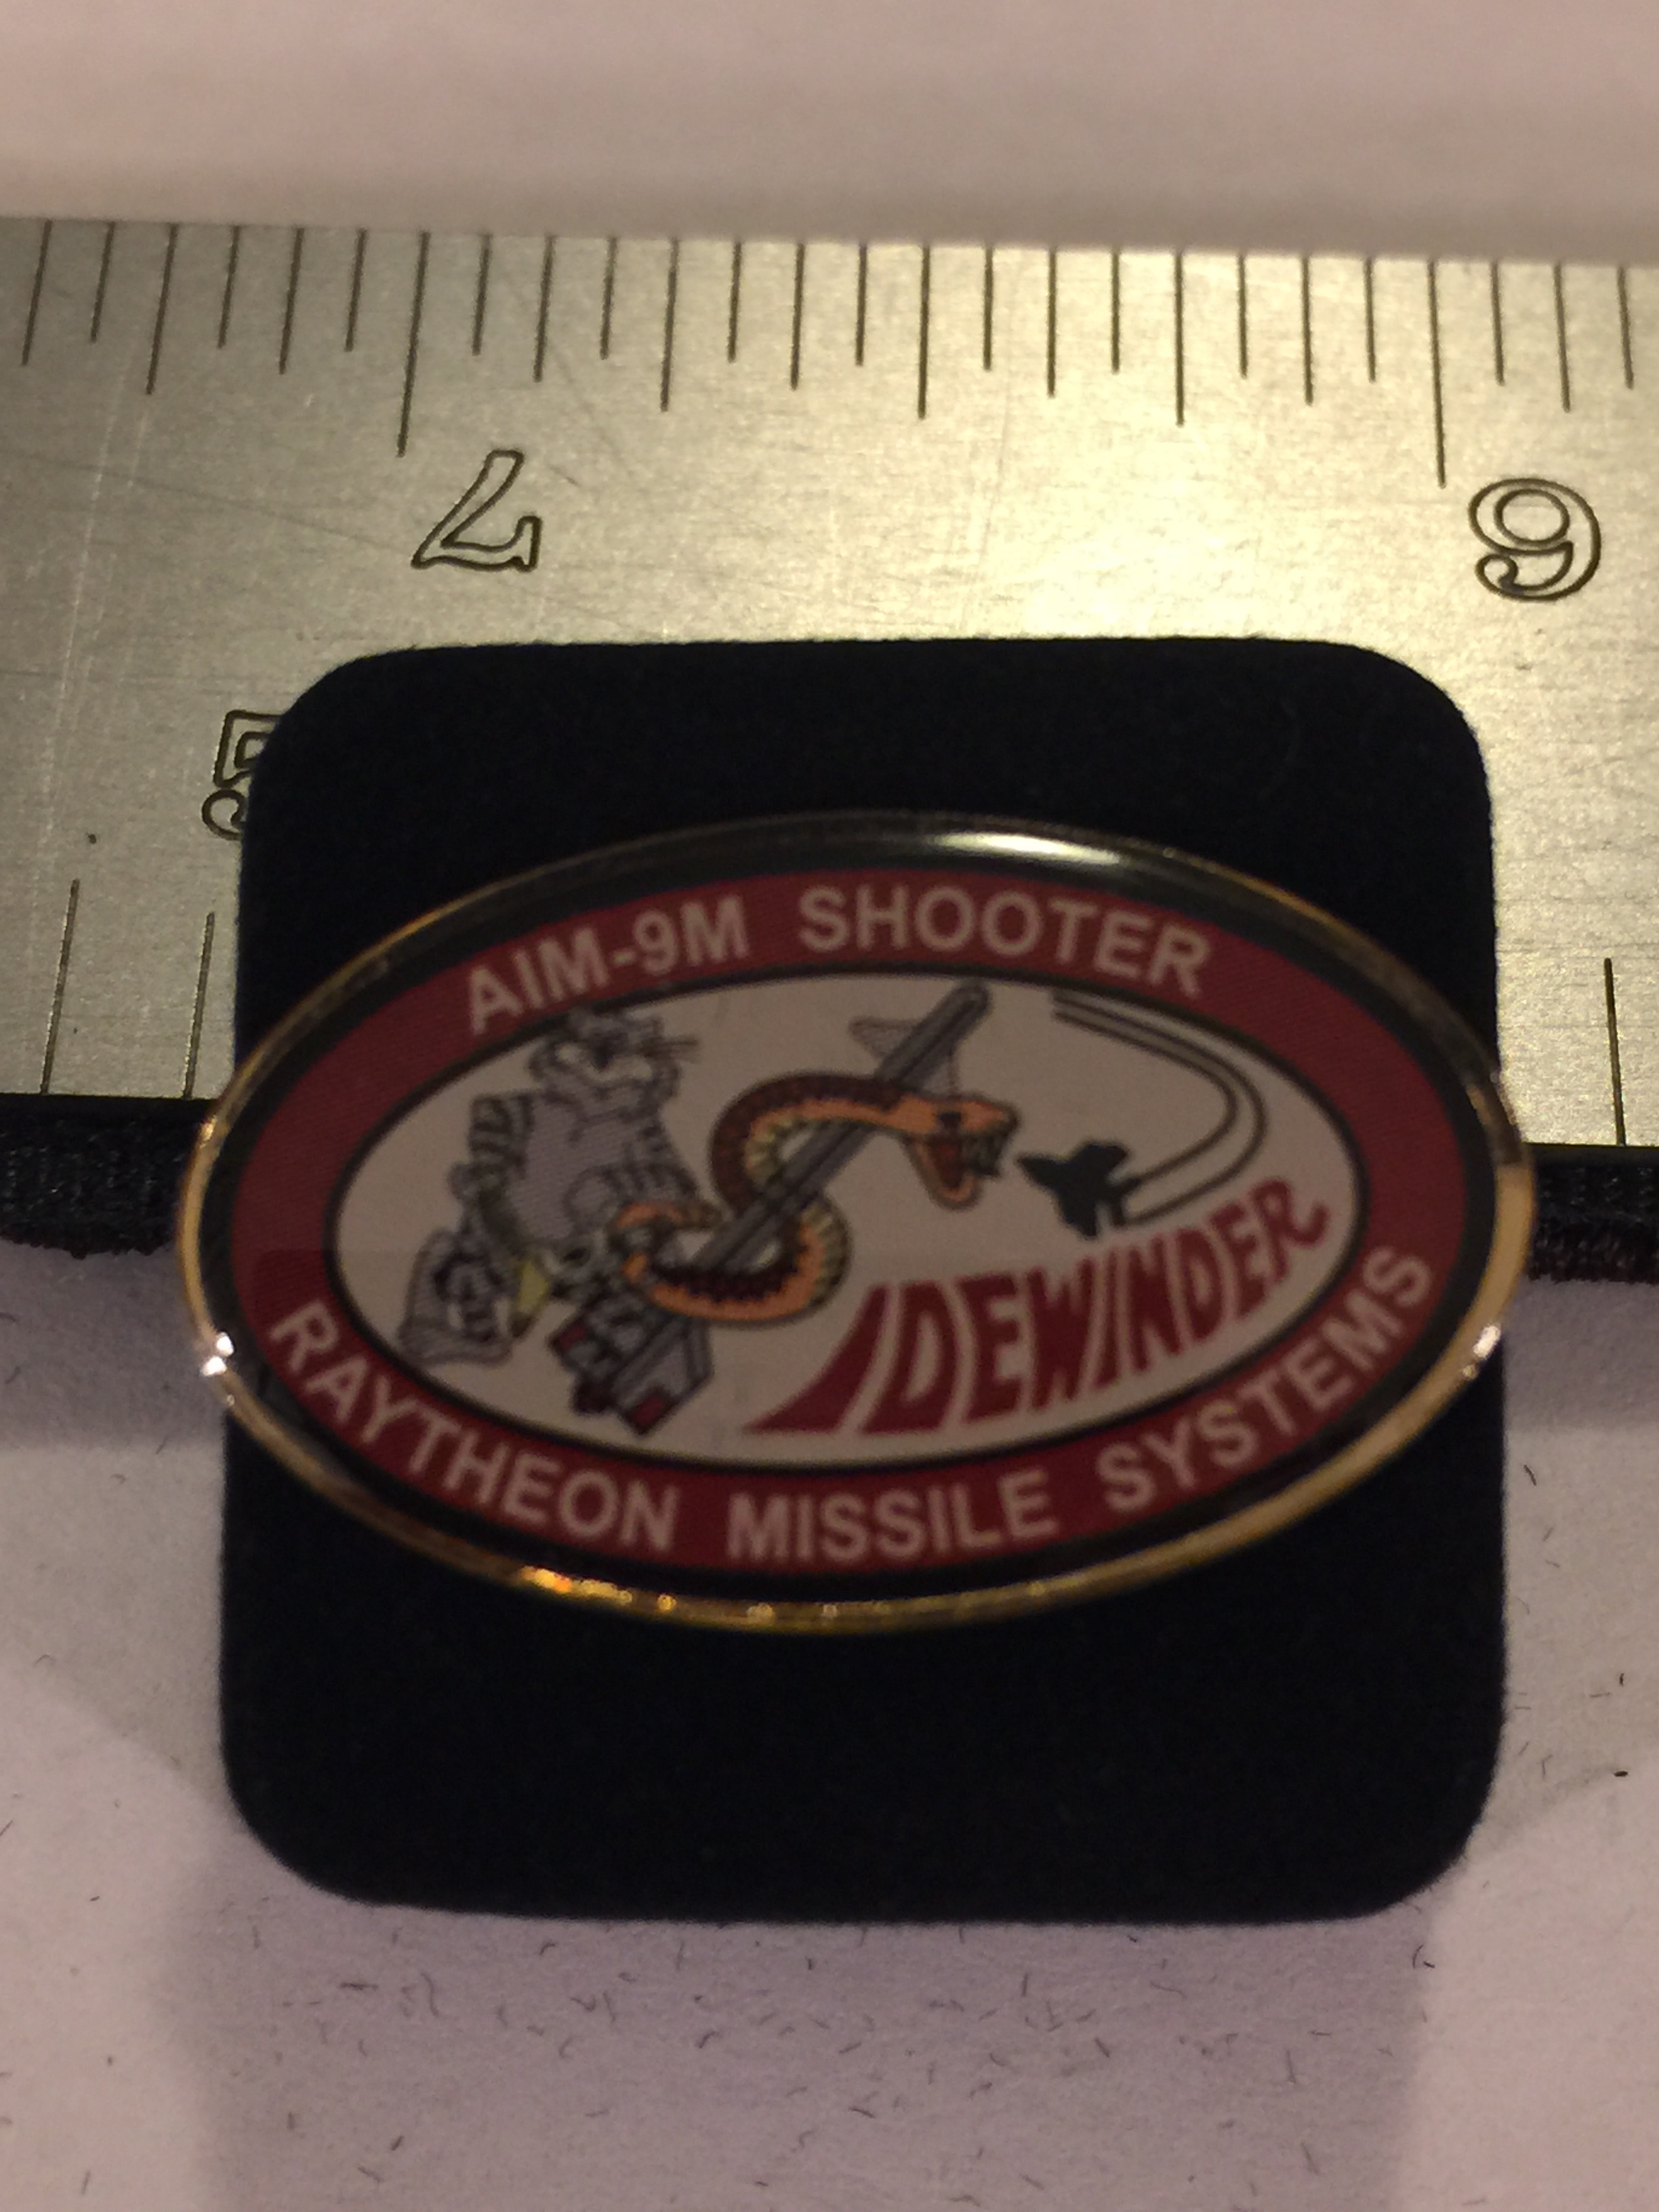 Lapel Pin: AIM-9RMS